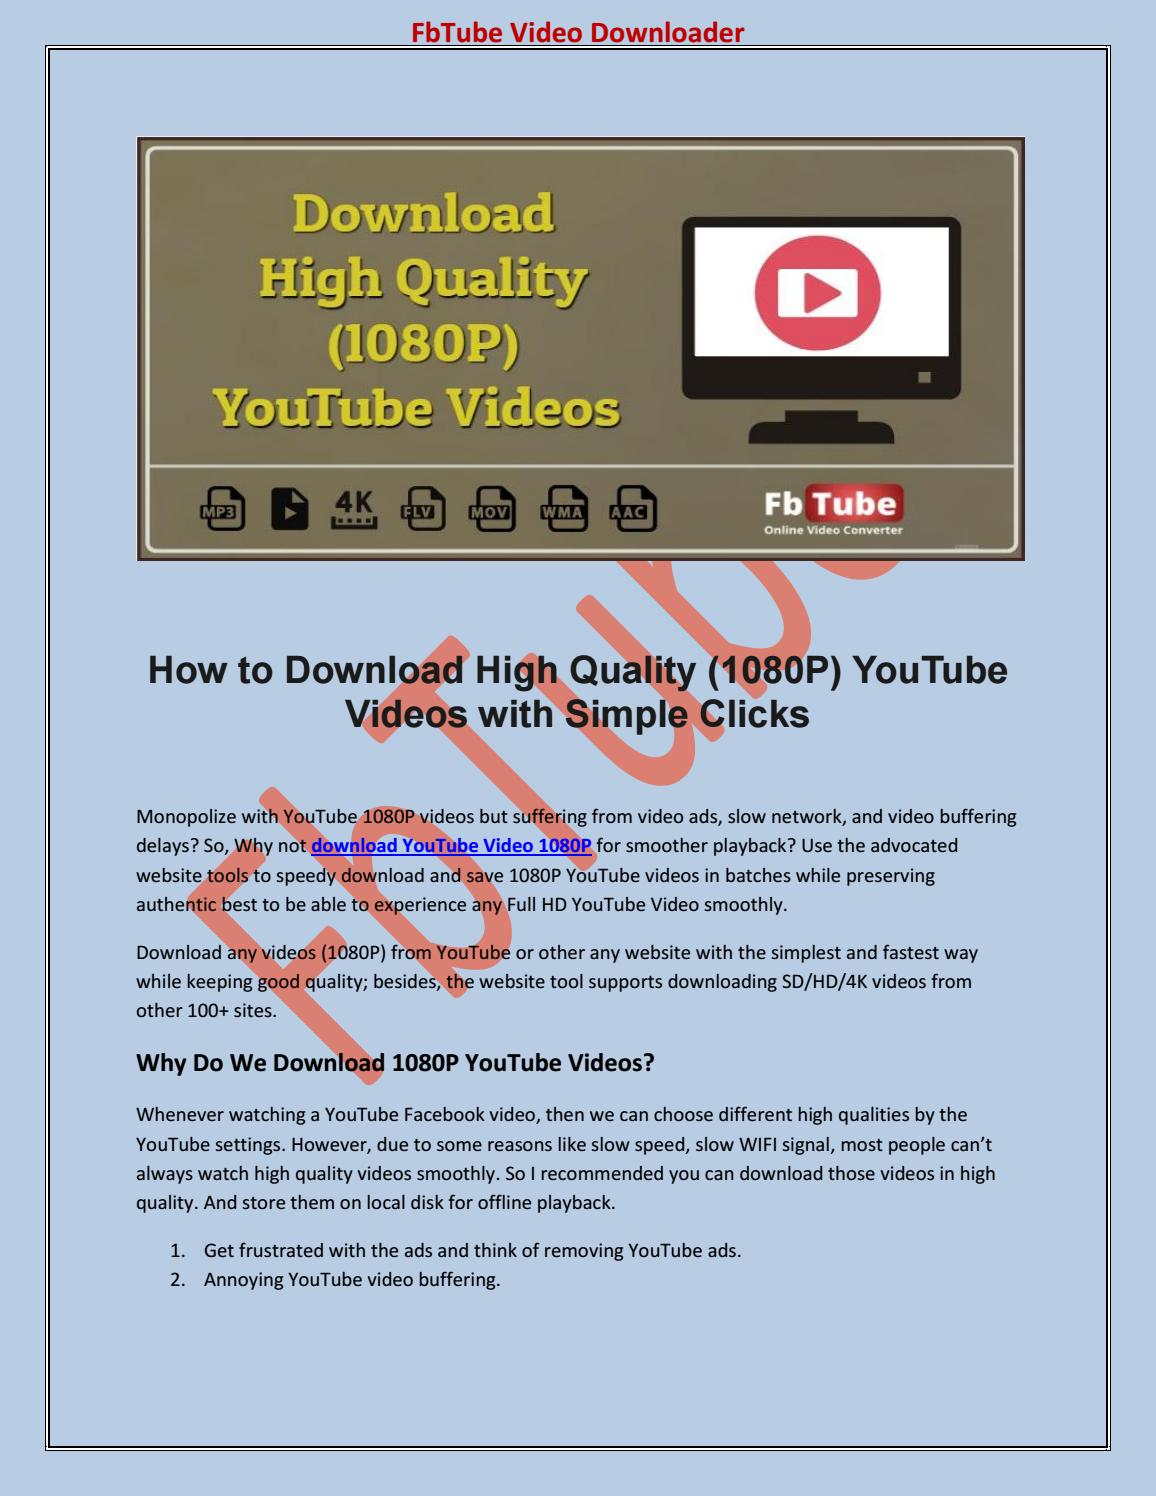 Download High Quality (1080P) YouTube Videos by Steven